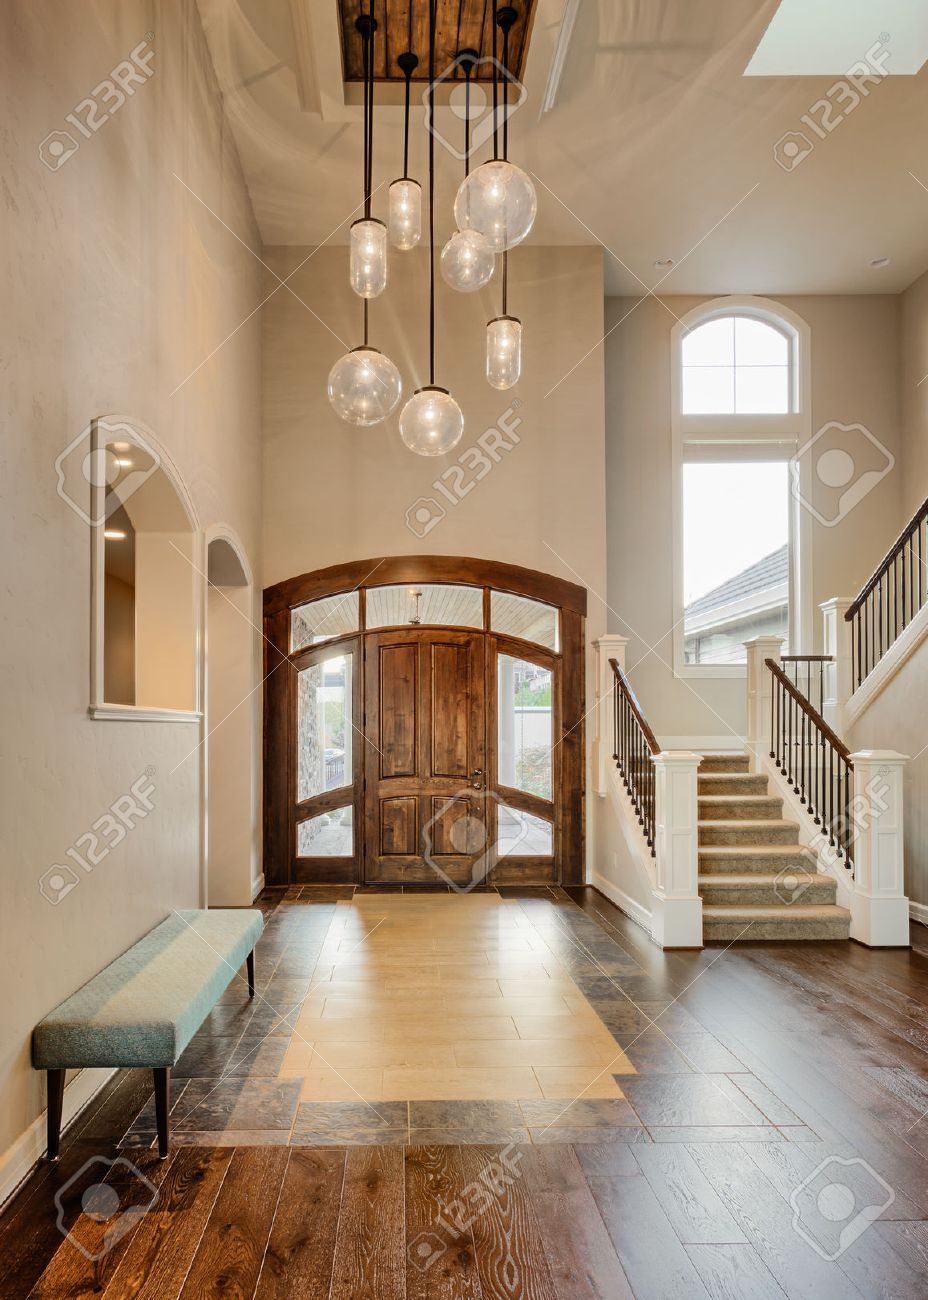 entryway and foyer in new luxury home interior stock photo picture